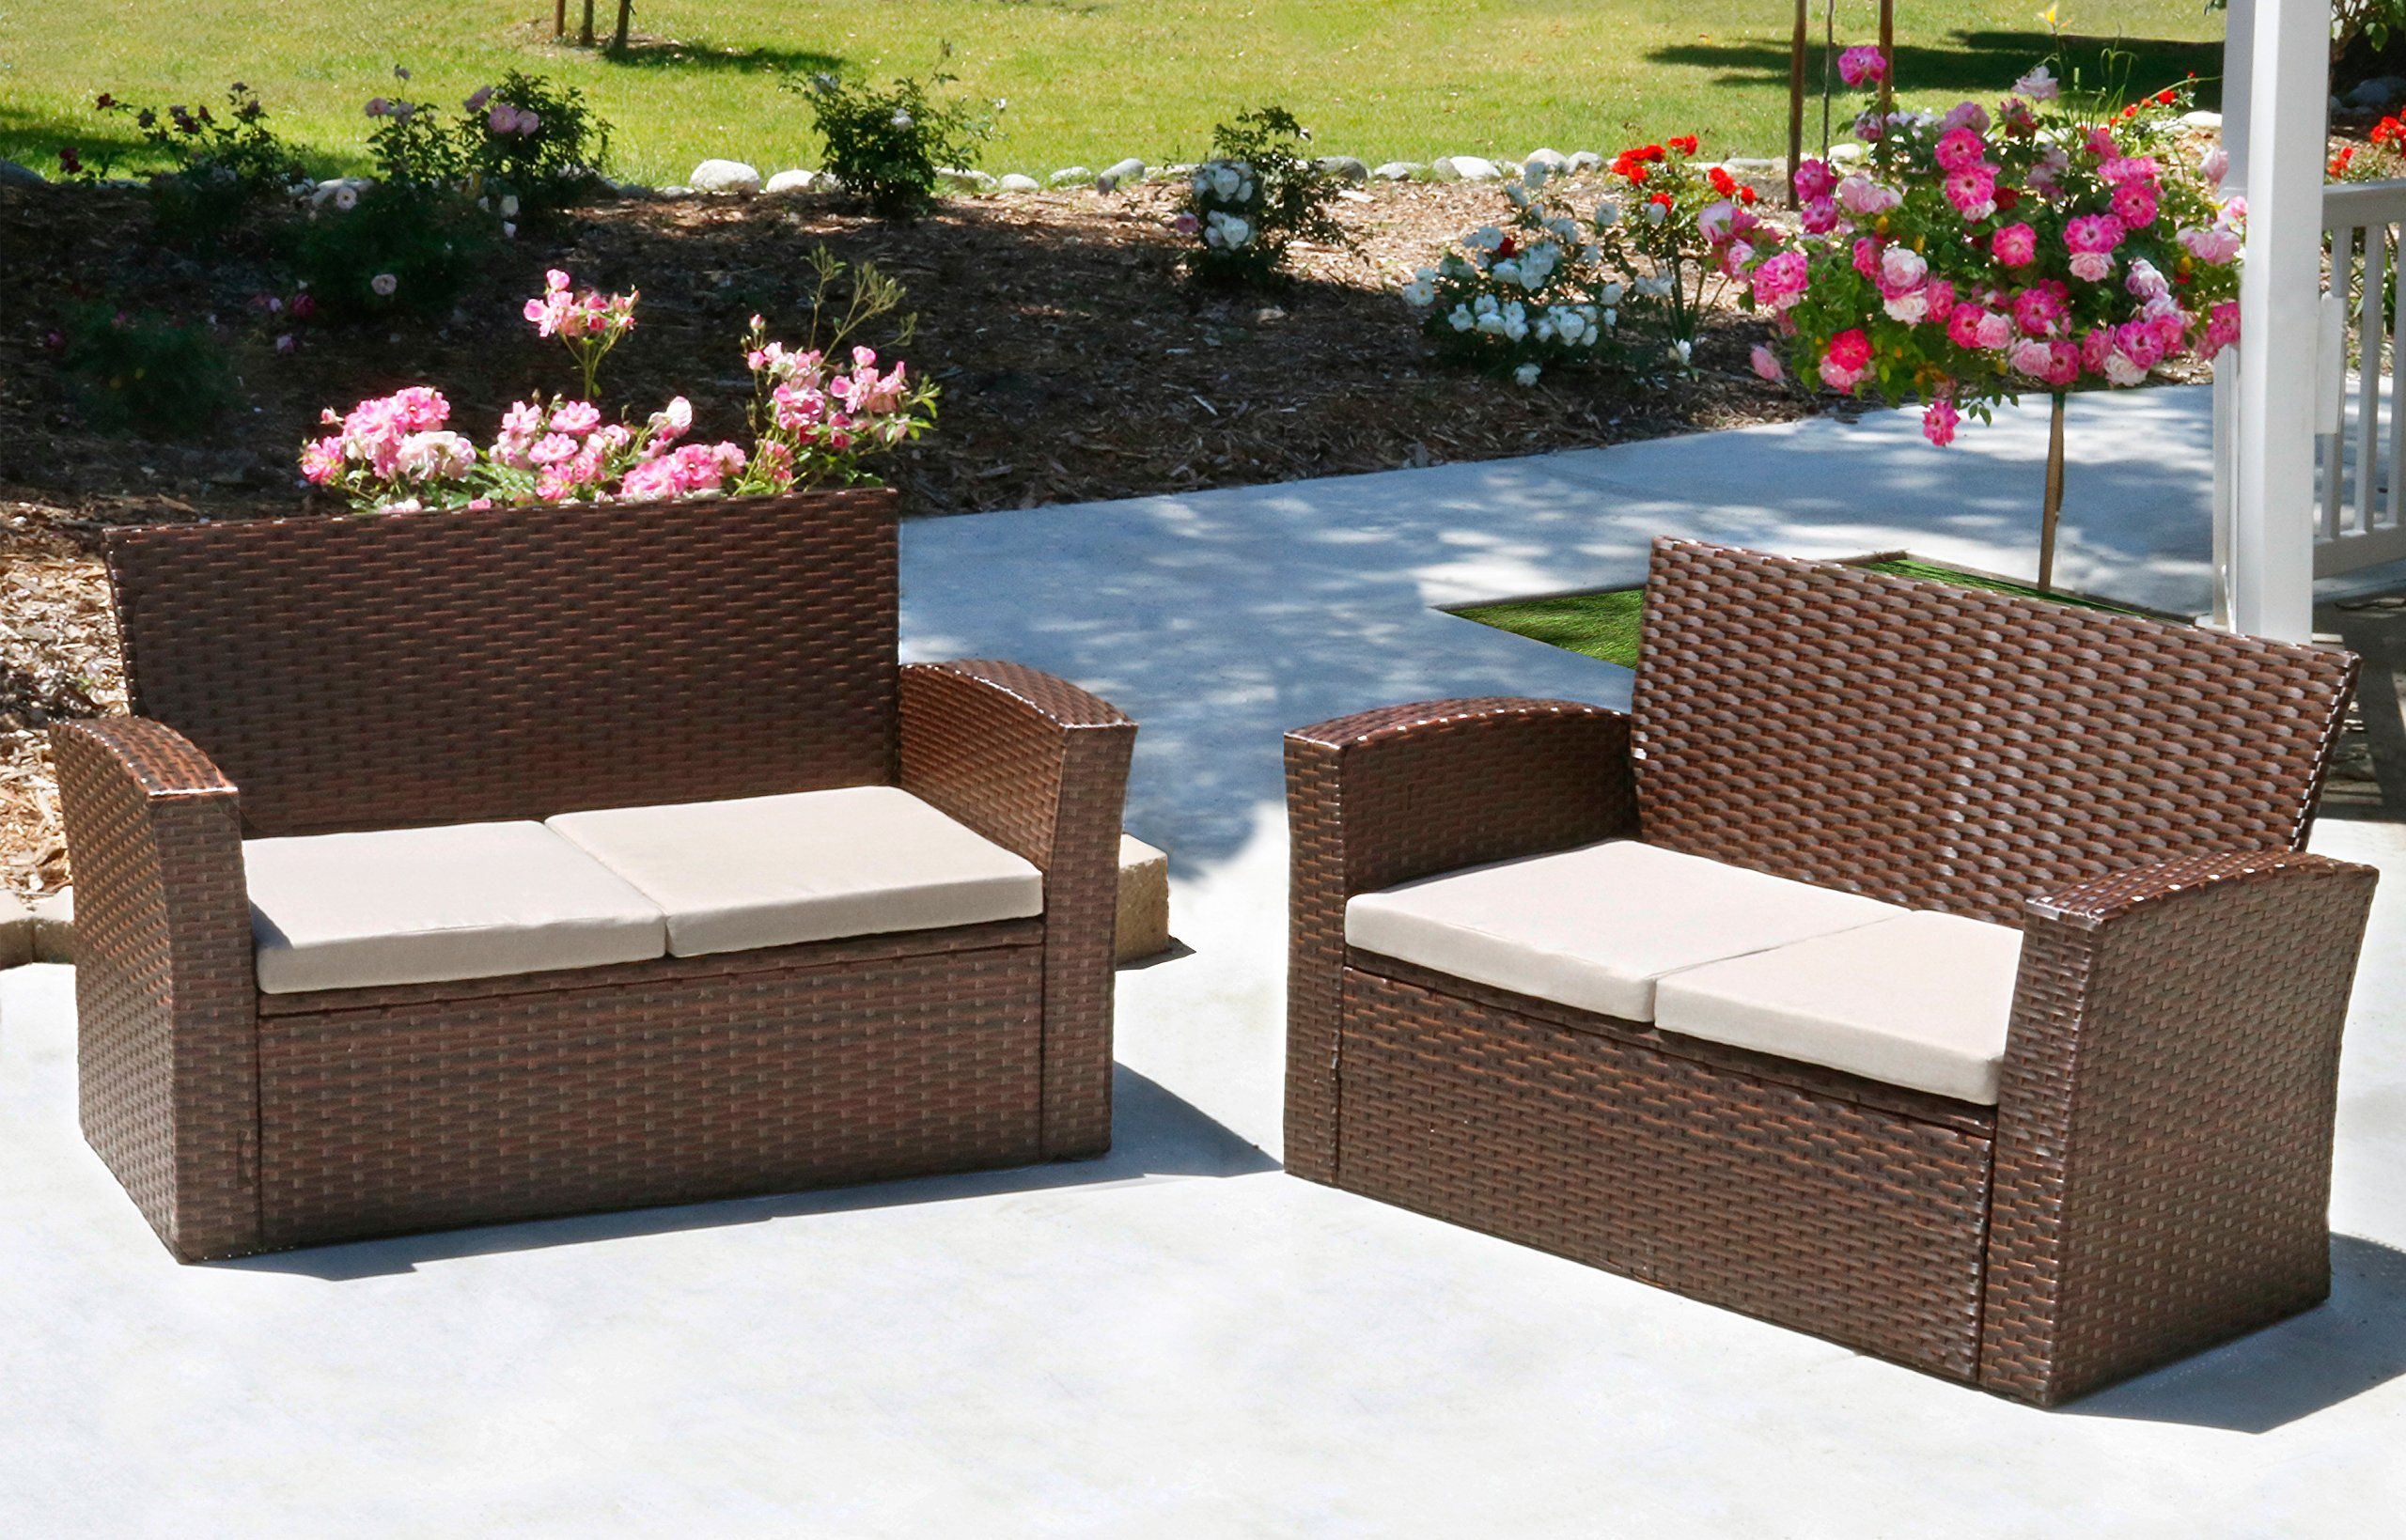 Innovex PRI12OD Prima Set Outdoor Patio Furniture large